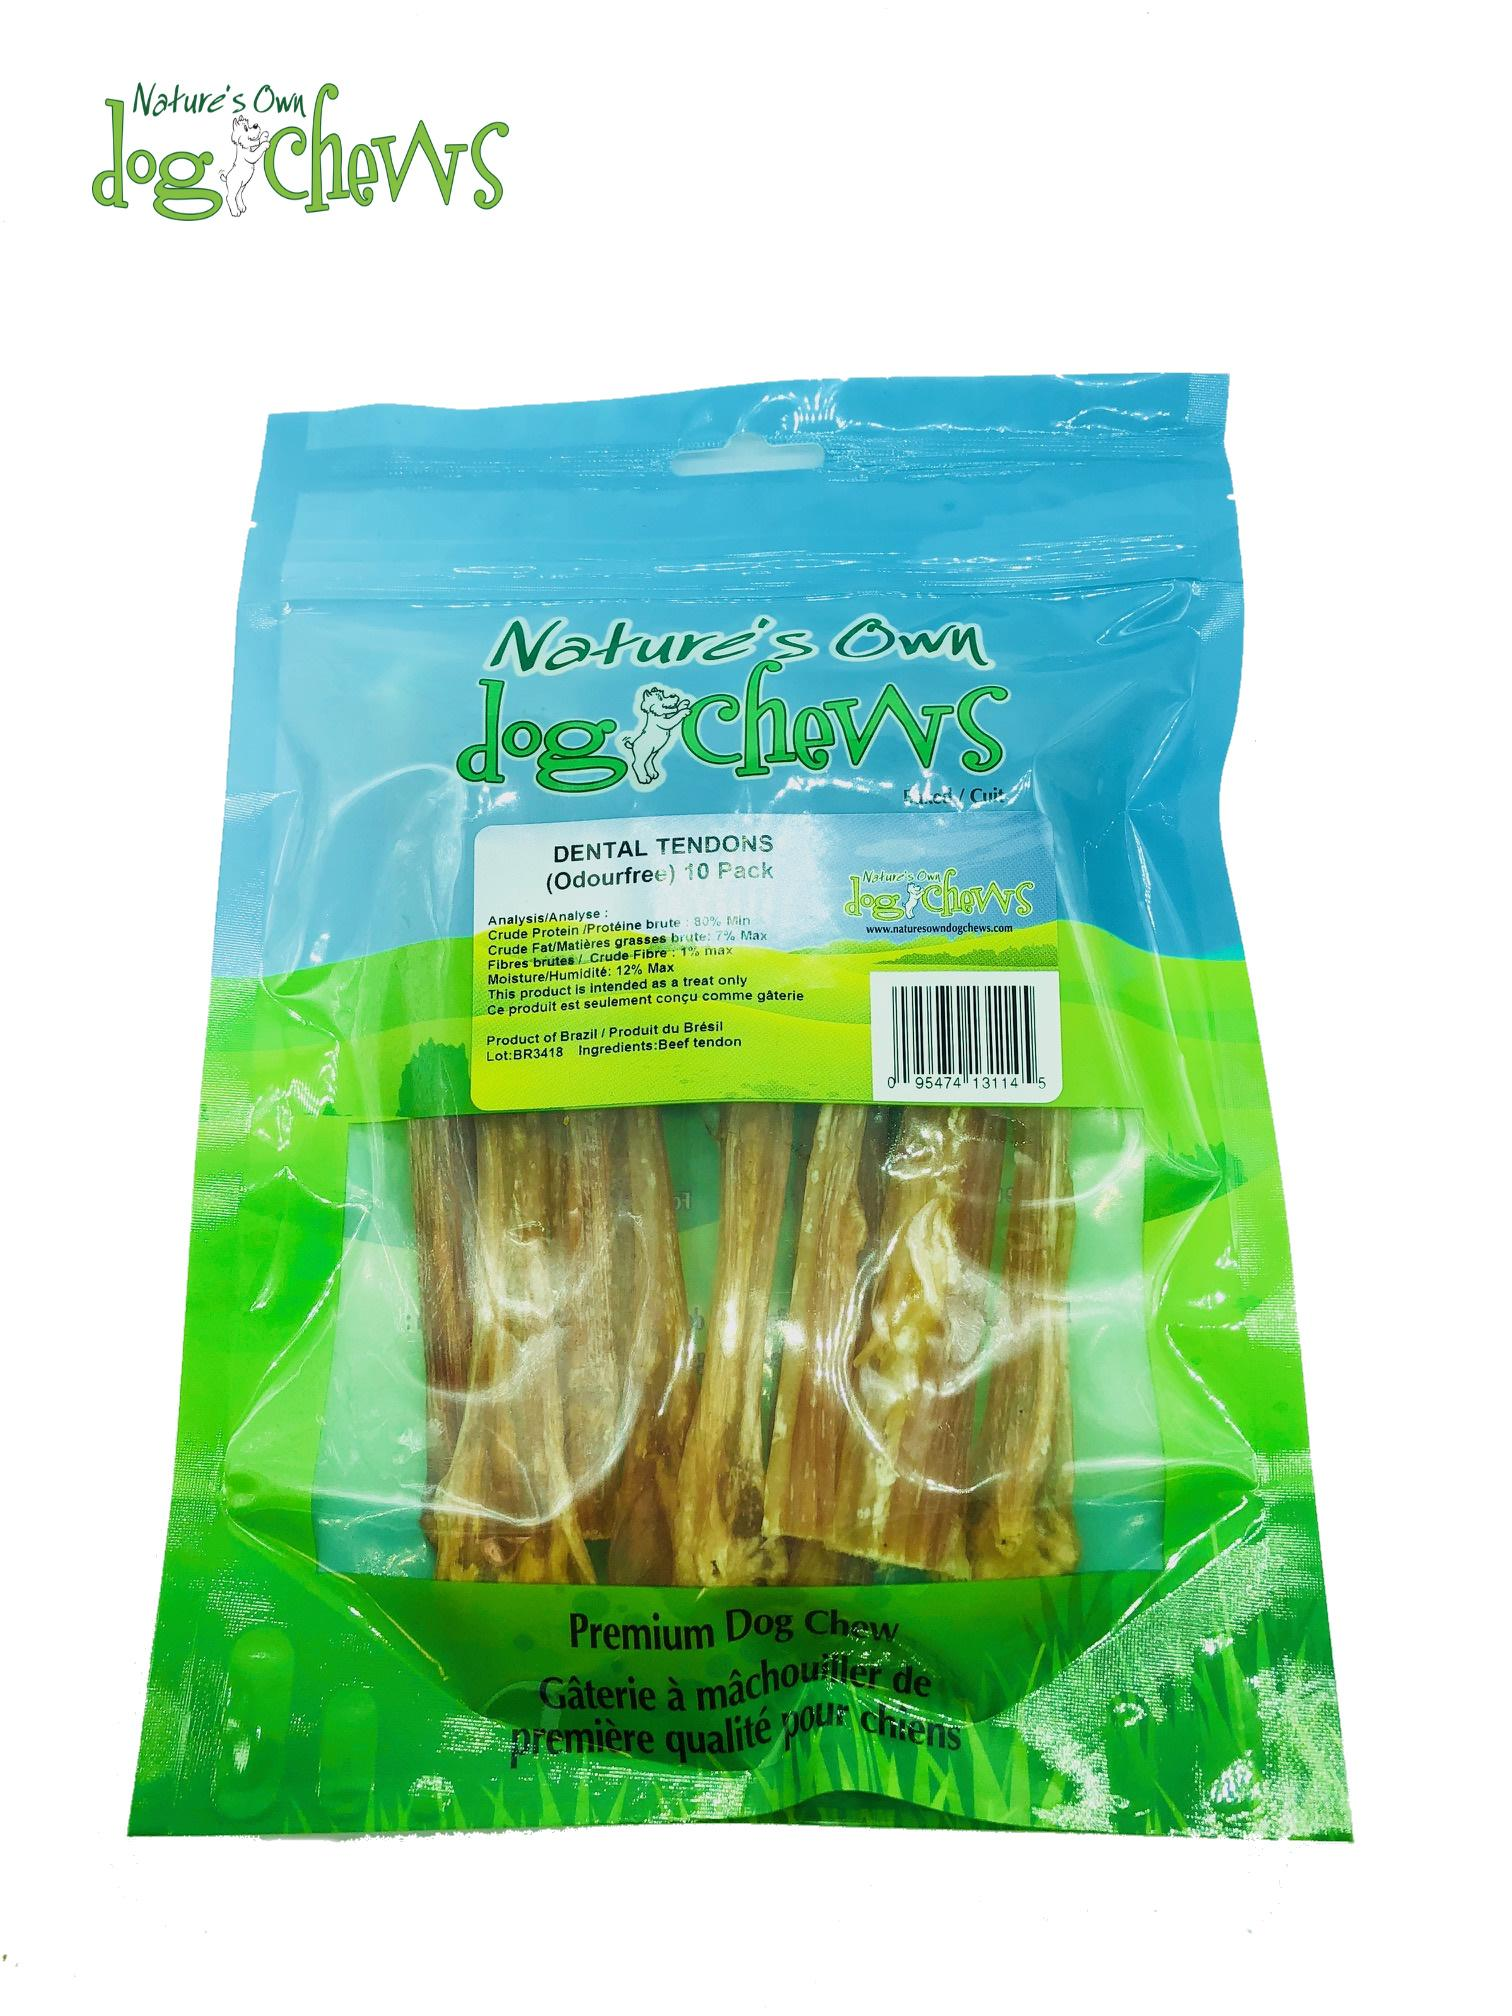 Nature's Own Dog Chews Dental Tendons Treats for Small Dogs, 10-pk